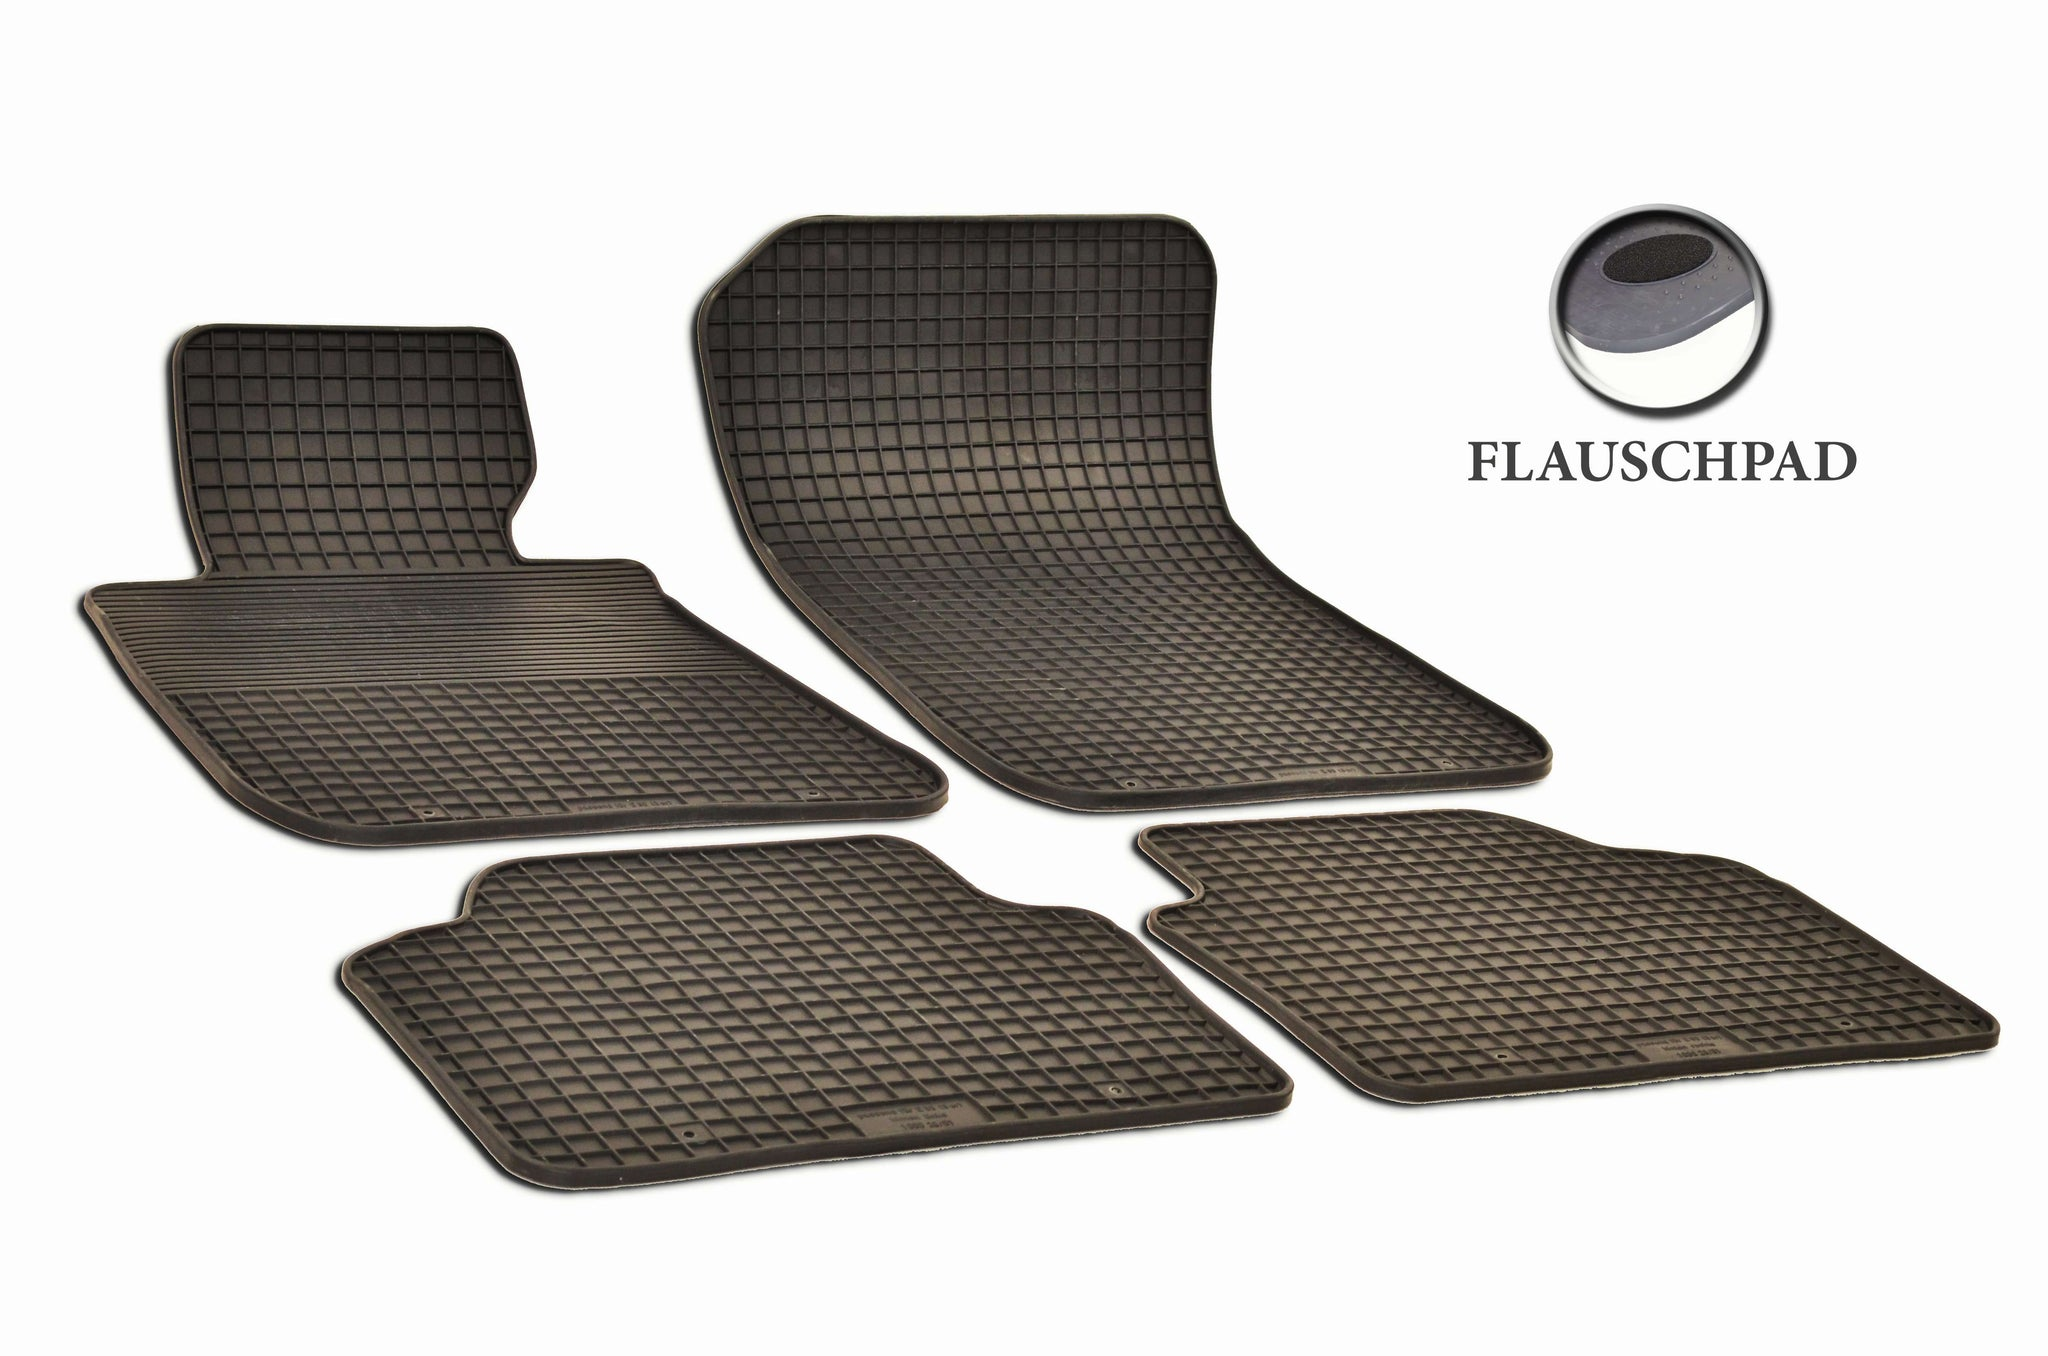 BMW 328i 2011 Wagon E91 Set of 4 Black Rubber OE Fit All Weather Car Floor Mats